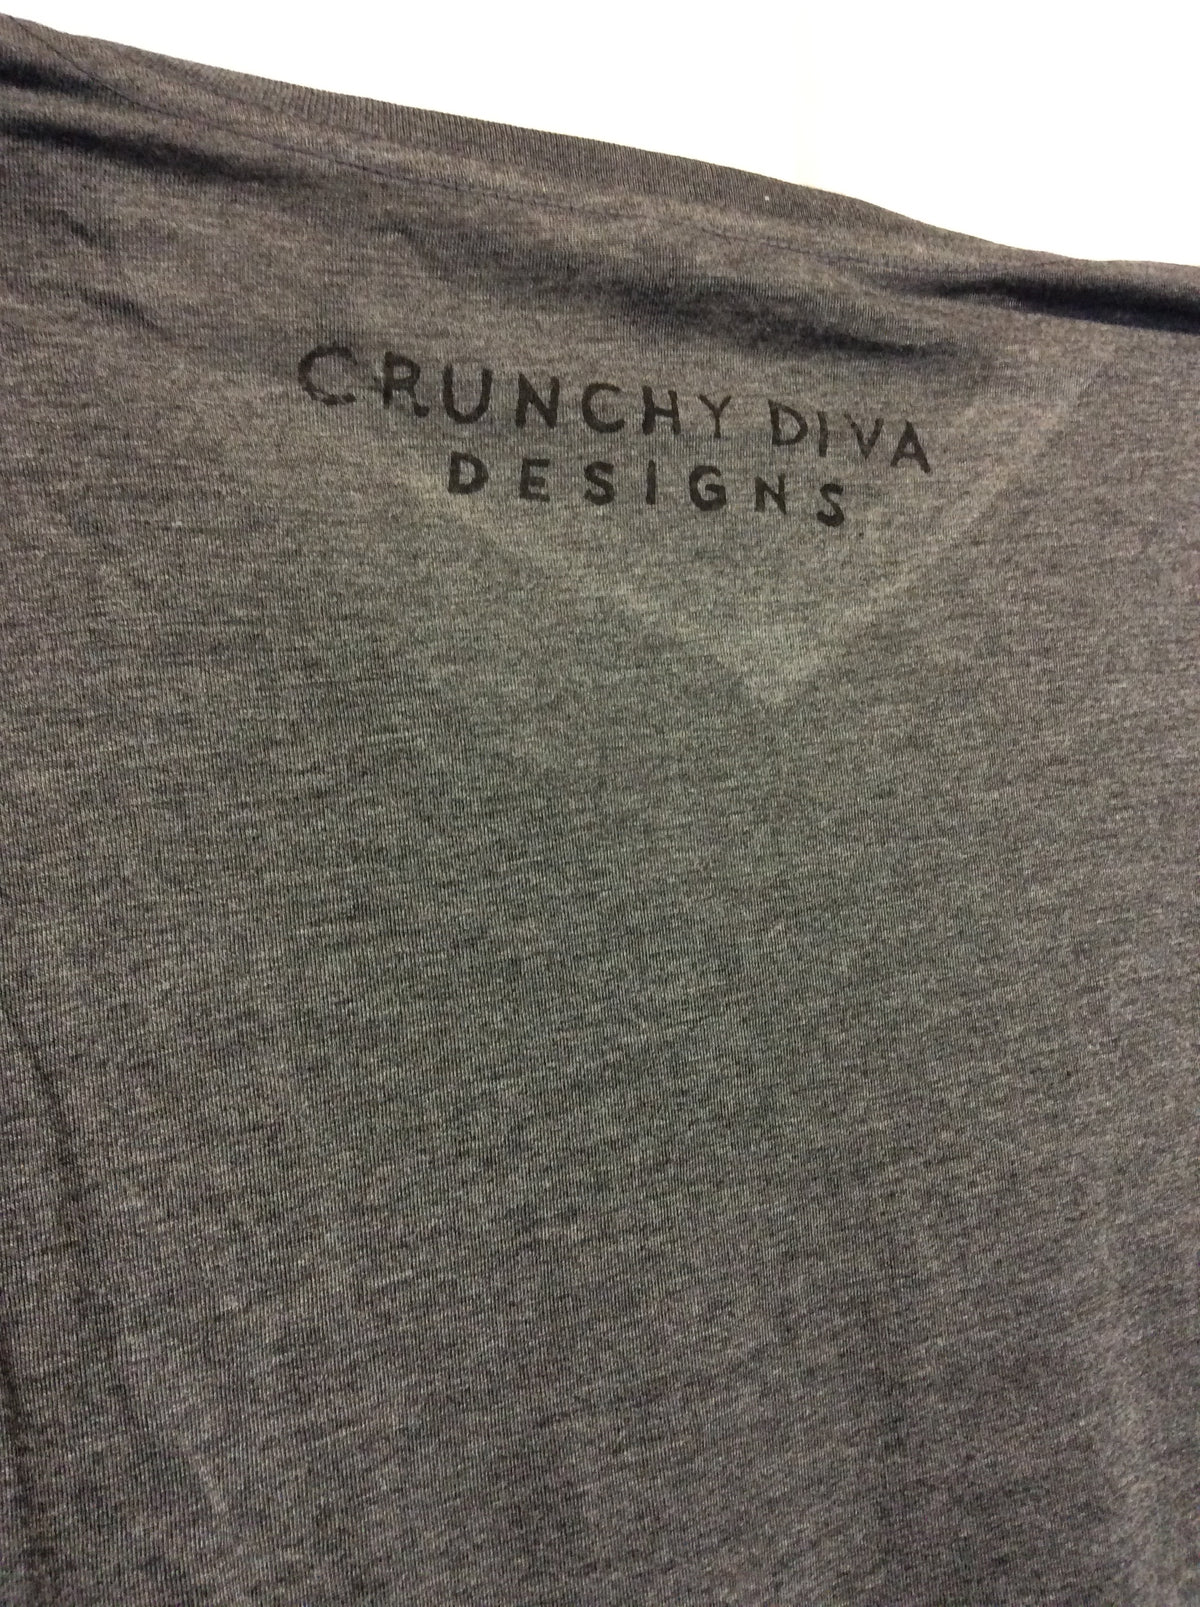 Crunchy Diva Designs Long Sleeve Top